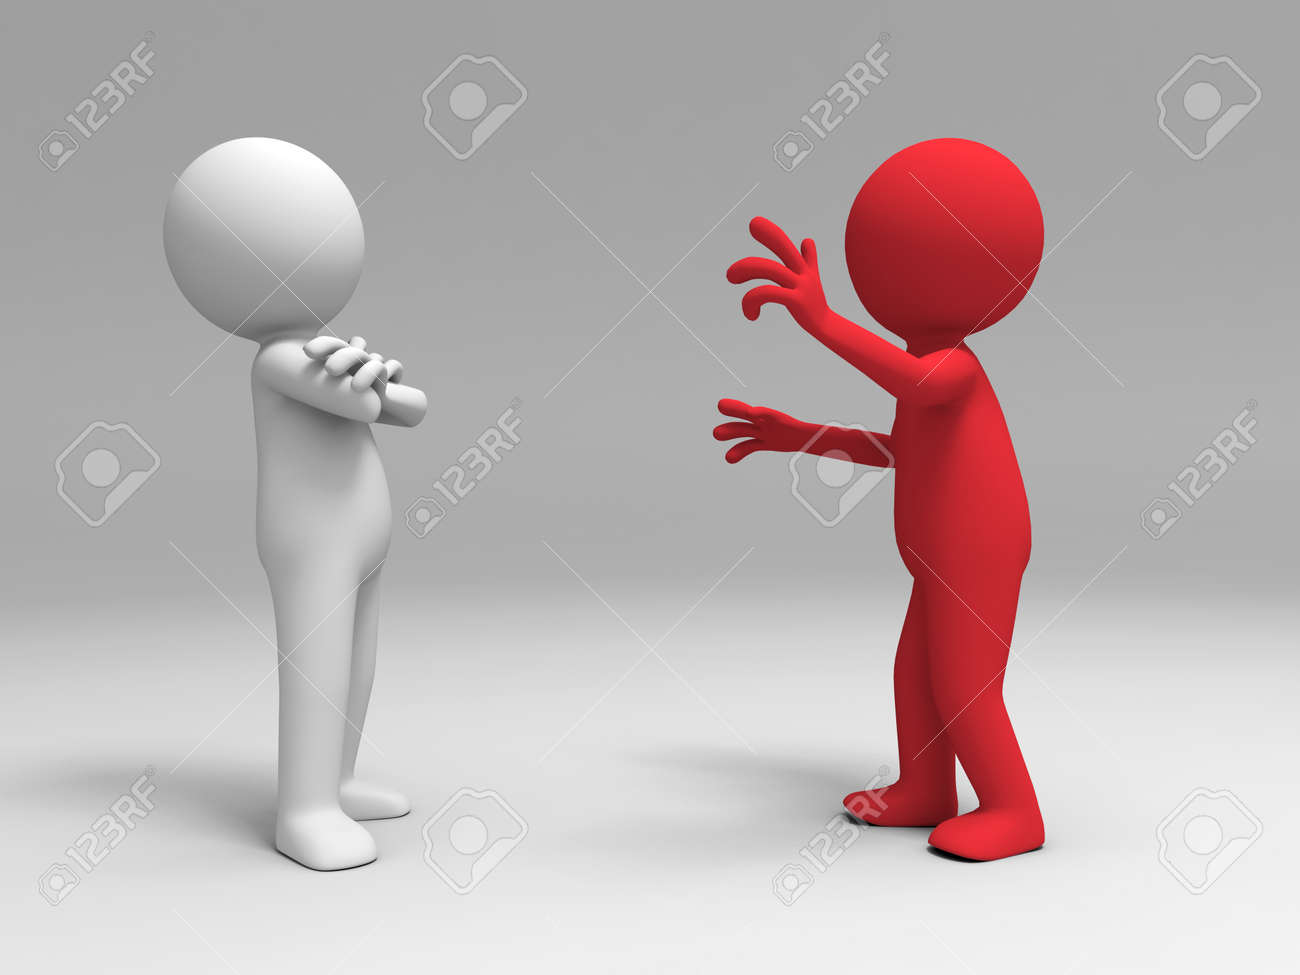 A man in explain to another person Stock Photo - 15405396